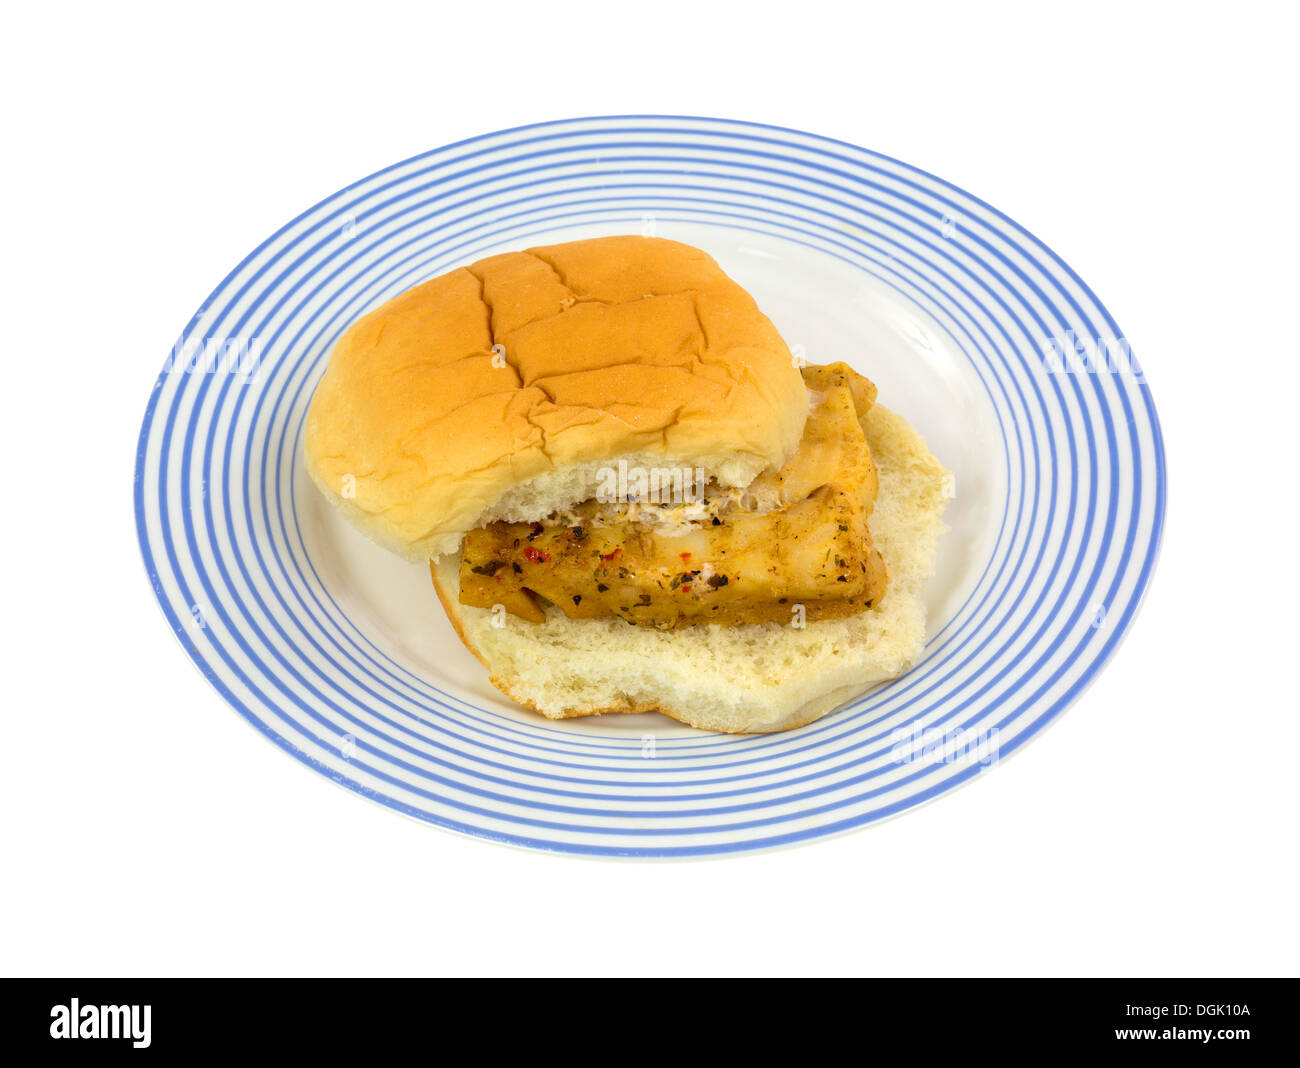 A portion of microwaved haddock between a white bread bun on a blue striped plate. - Stock Image